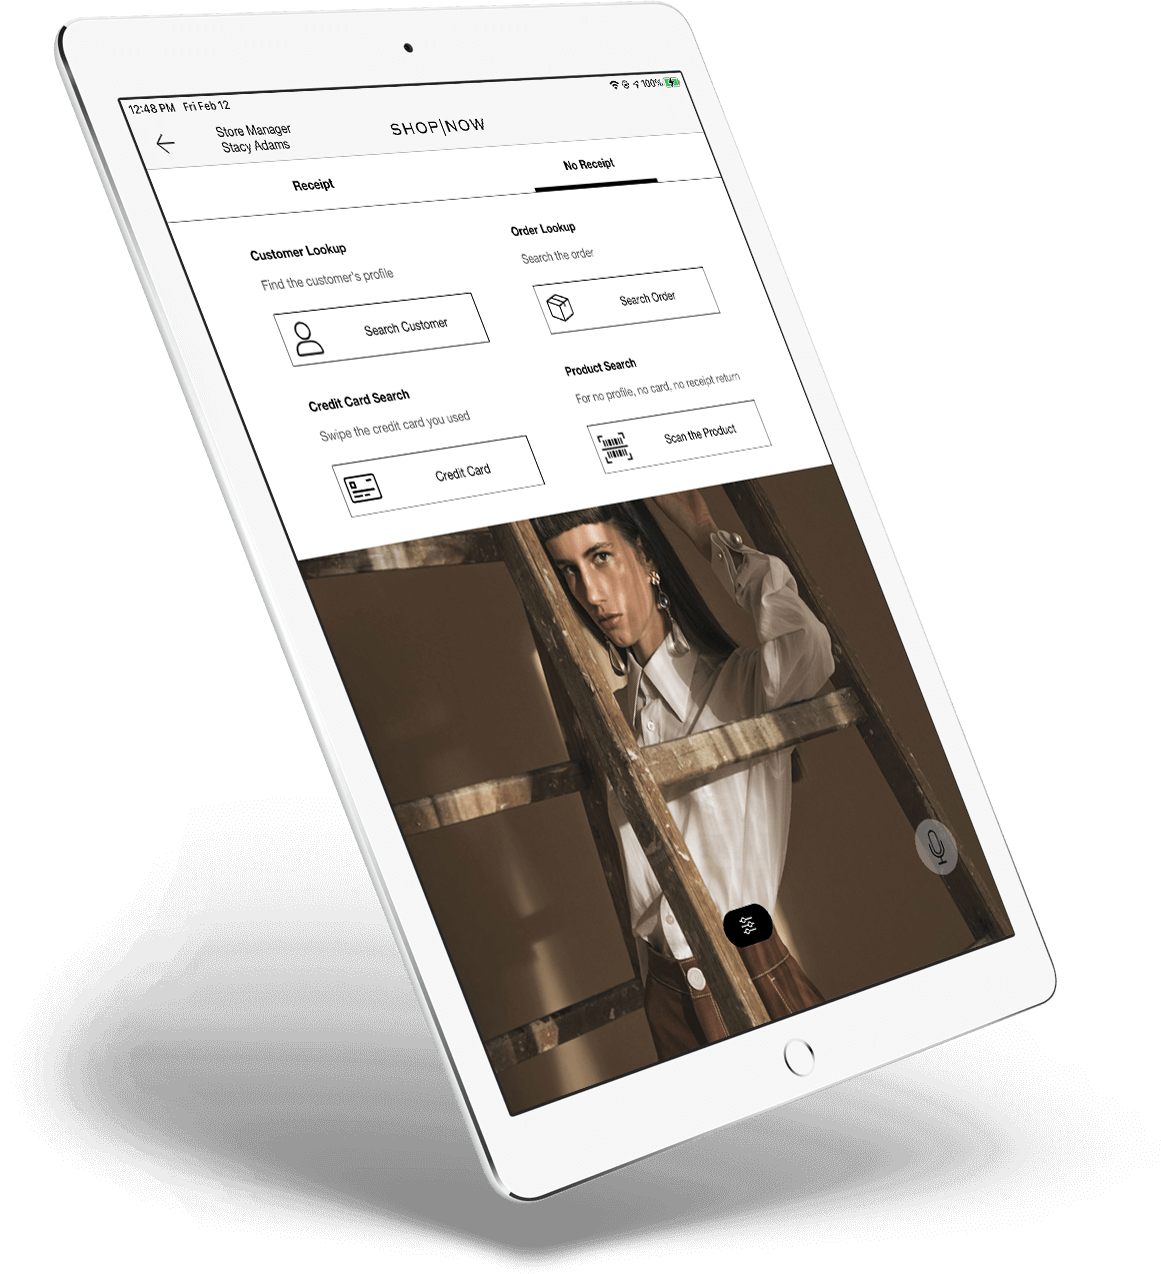 PacSun Native Mobile App Powered By PredictSpring